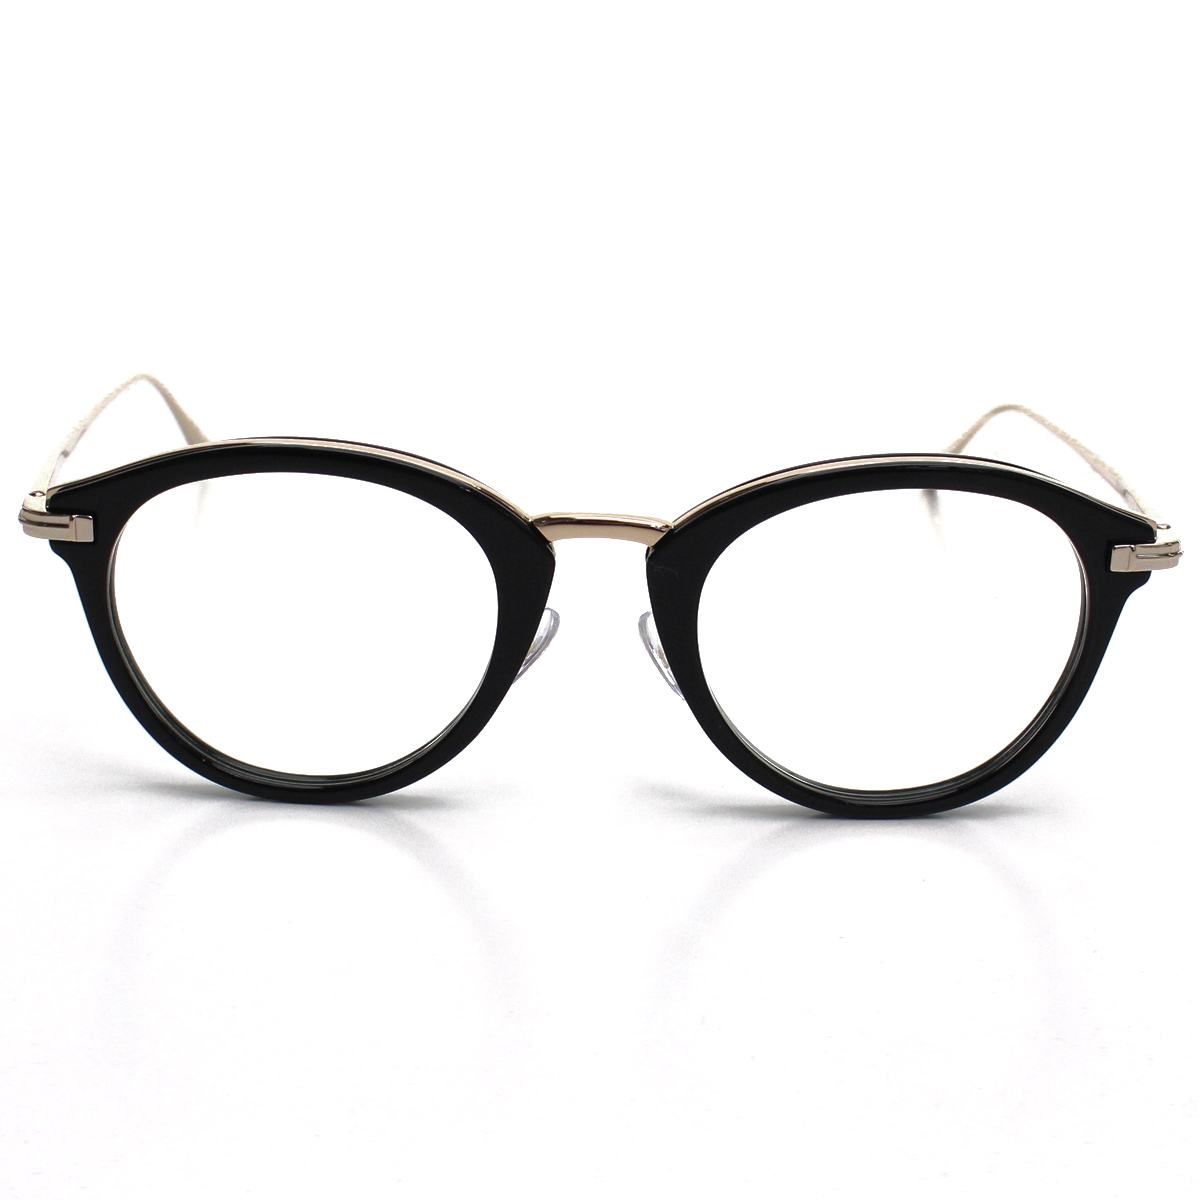 30f1197a5c The classic model of the Boston type. Metal and the combination of the cell  draw classic さを. The design which anyone is easy to wear as it is a frame  of ...